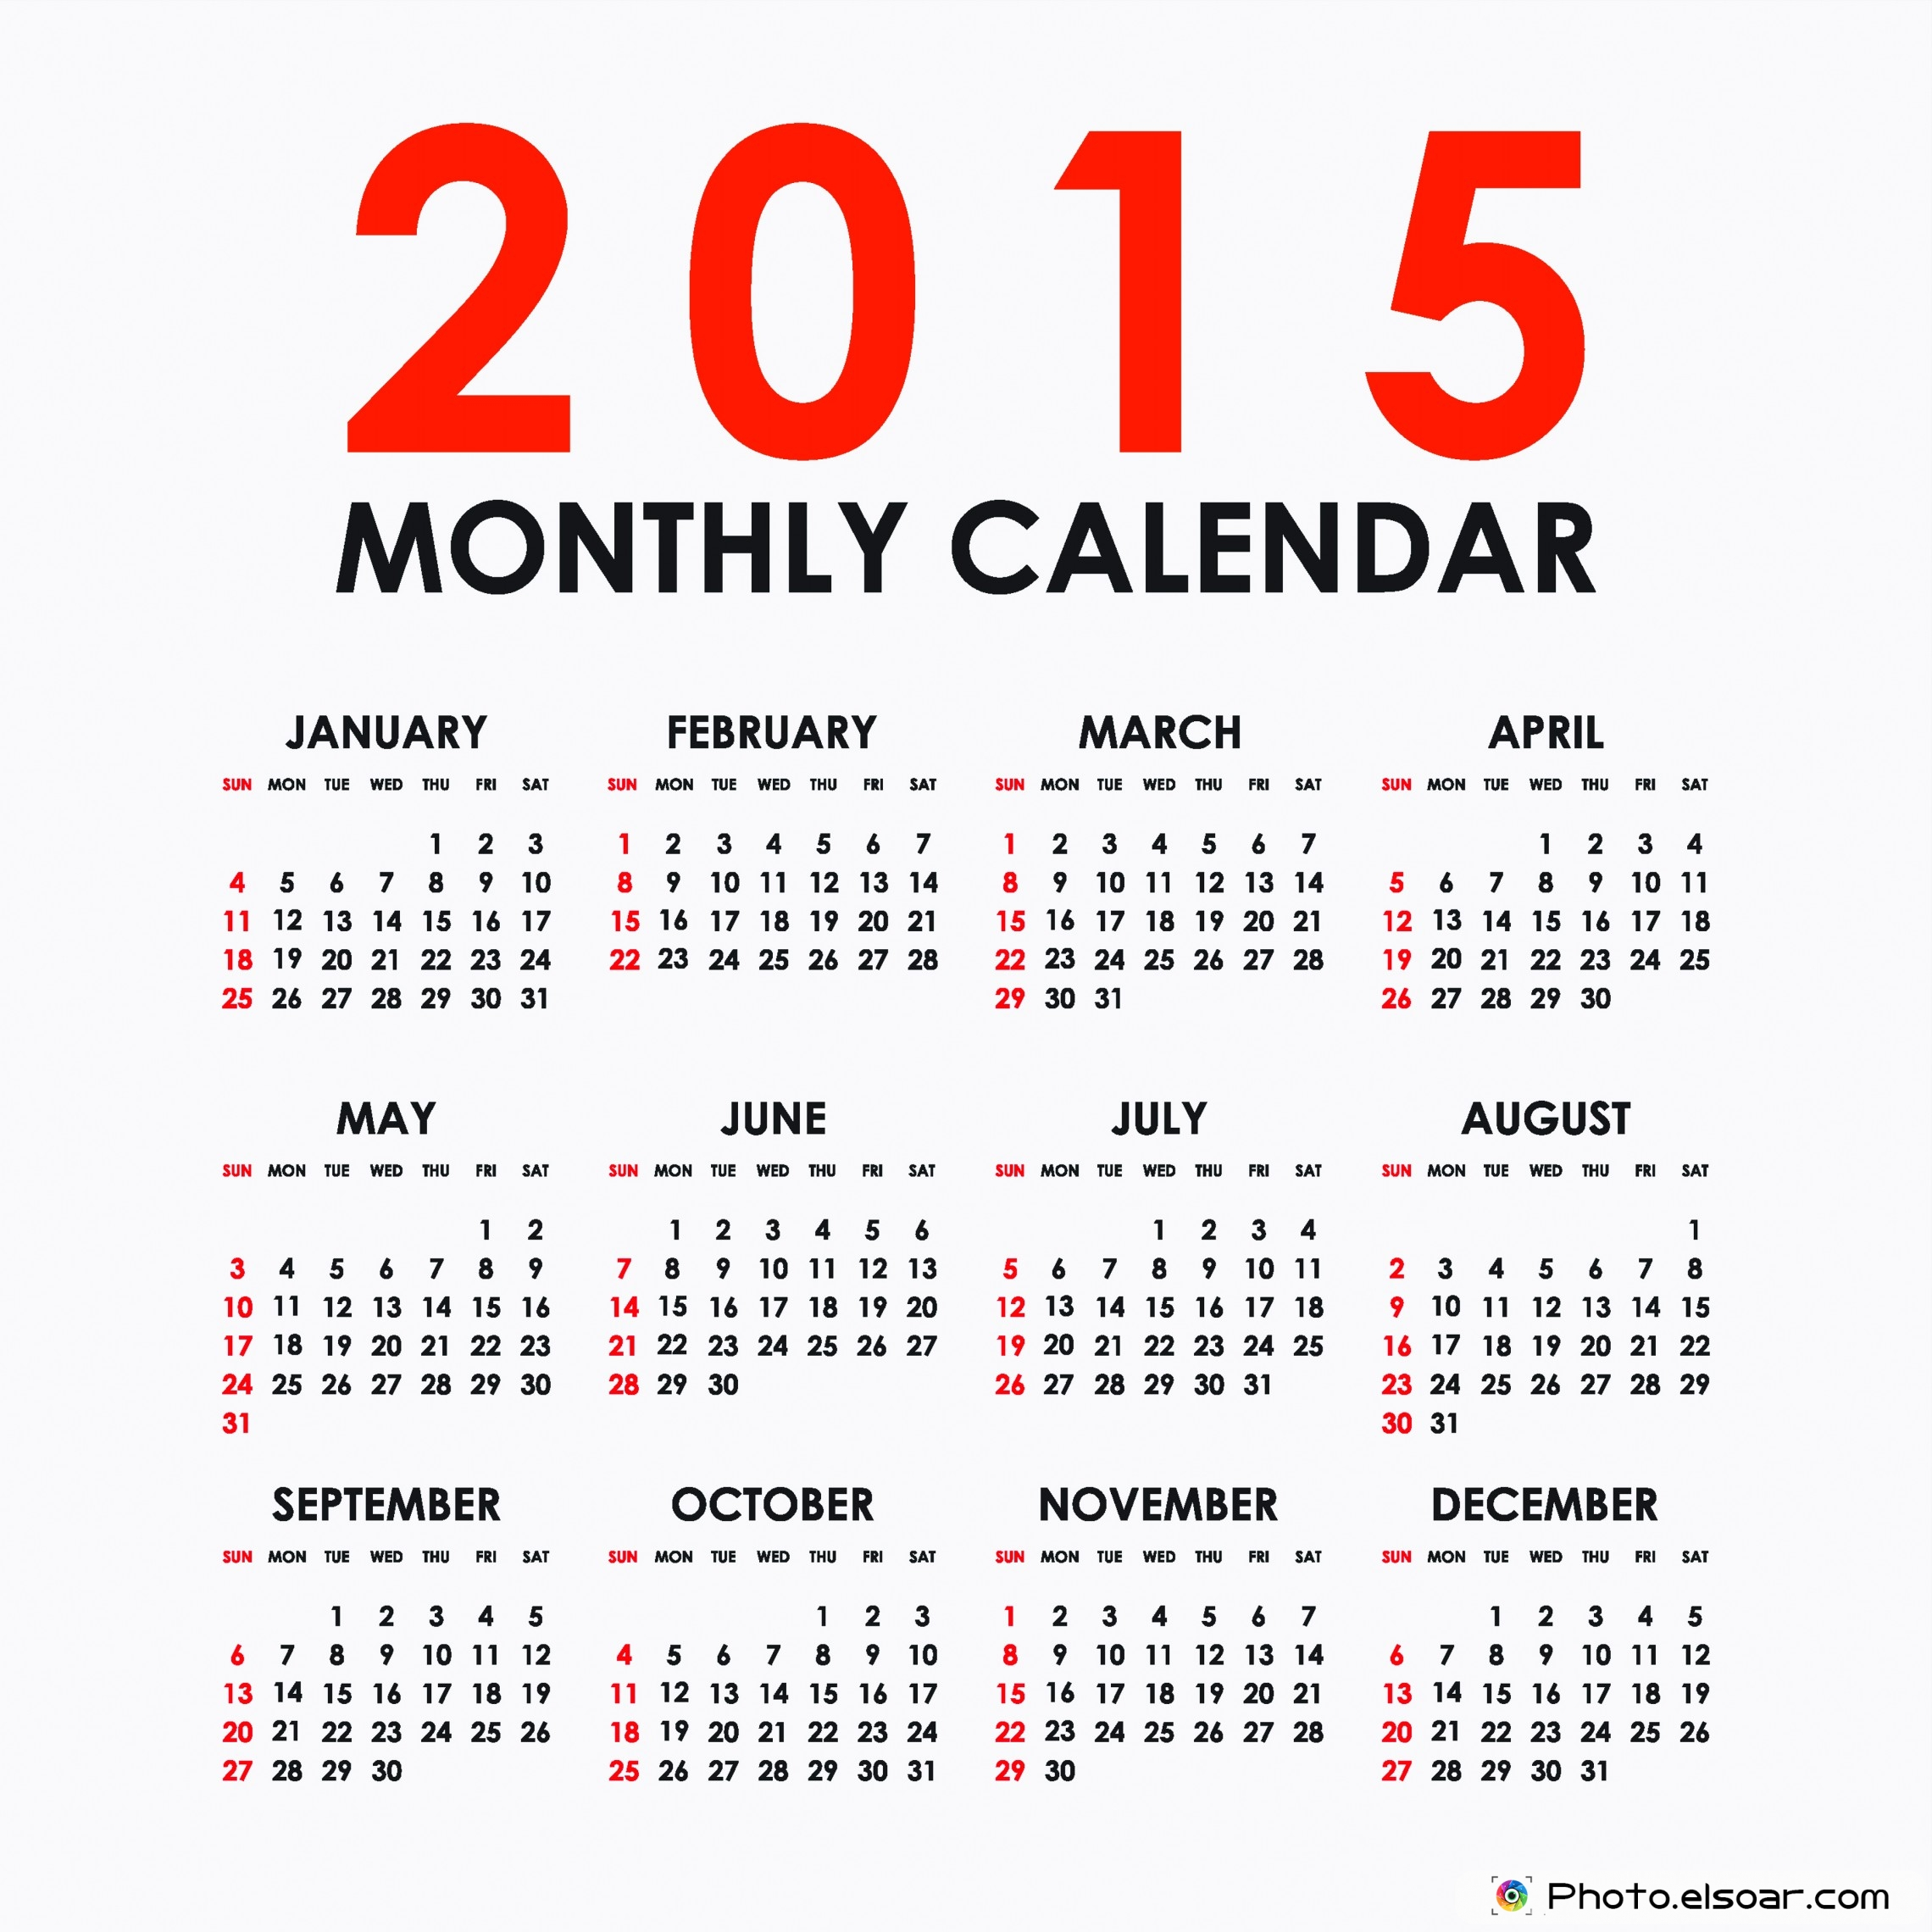 free monthly calendars 2015 on white backgrounds elsoar